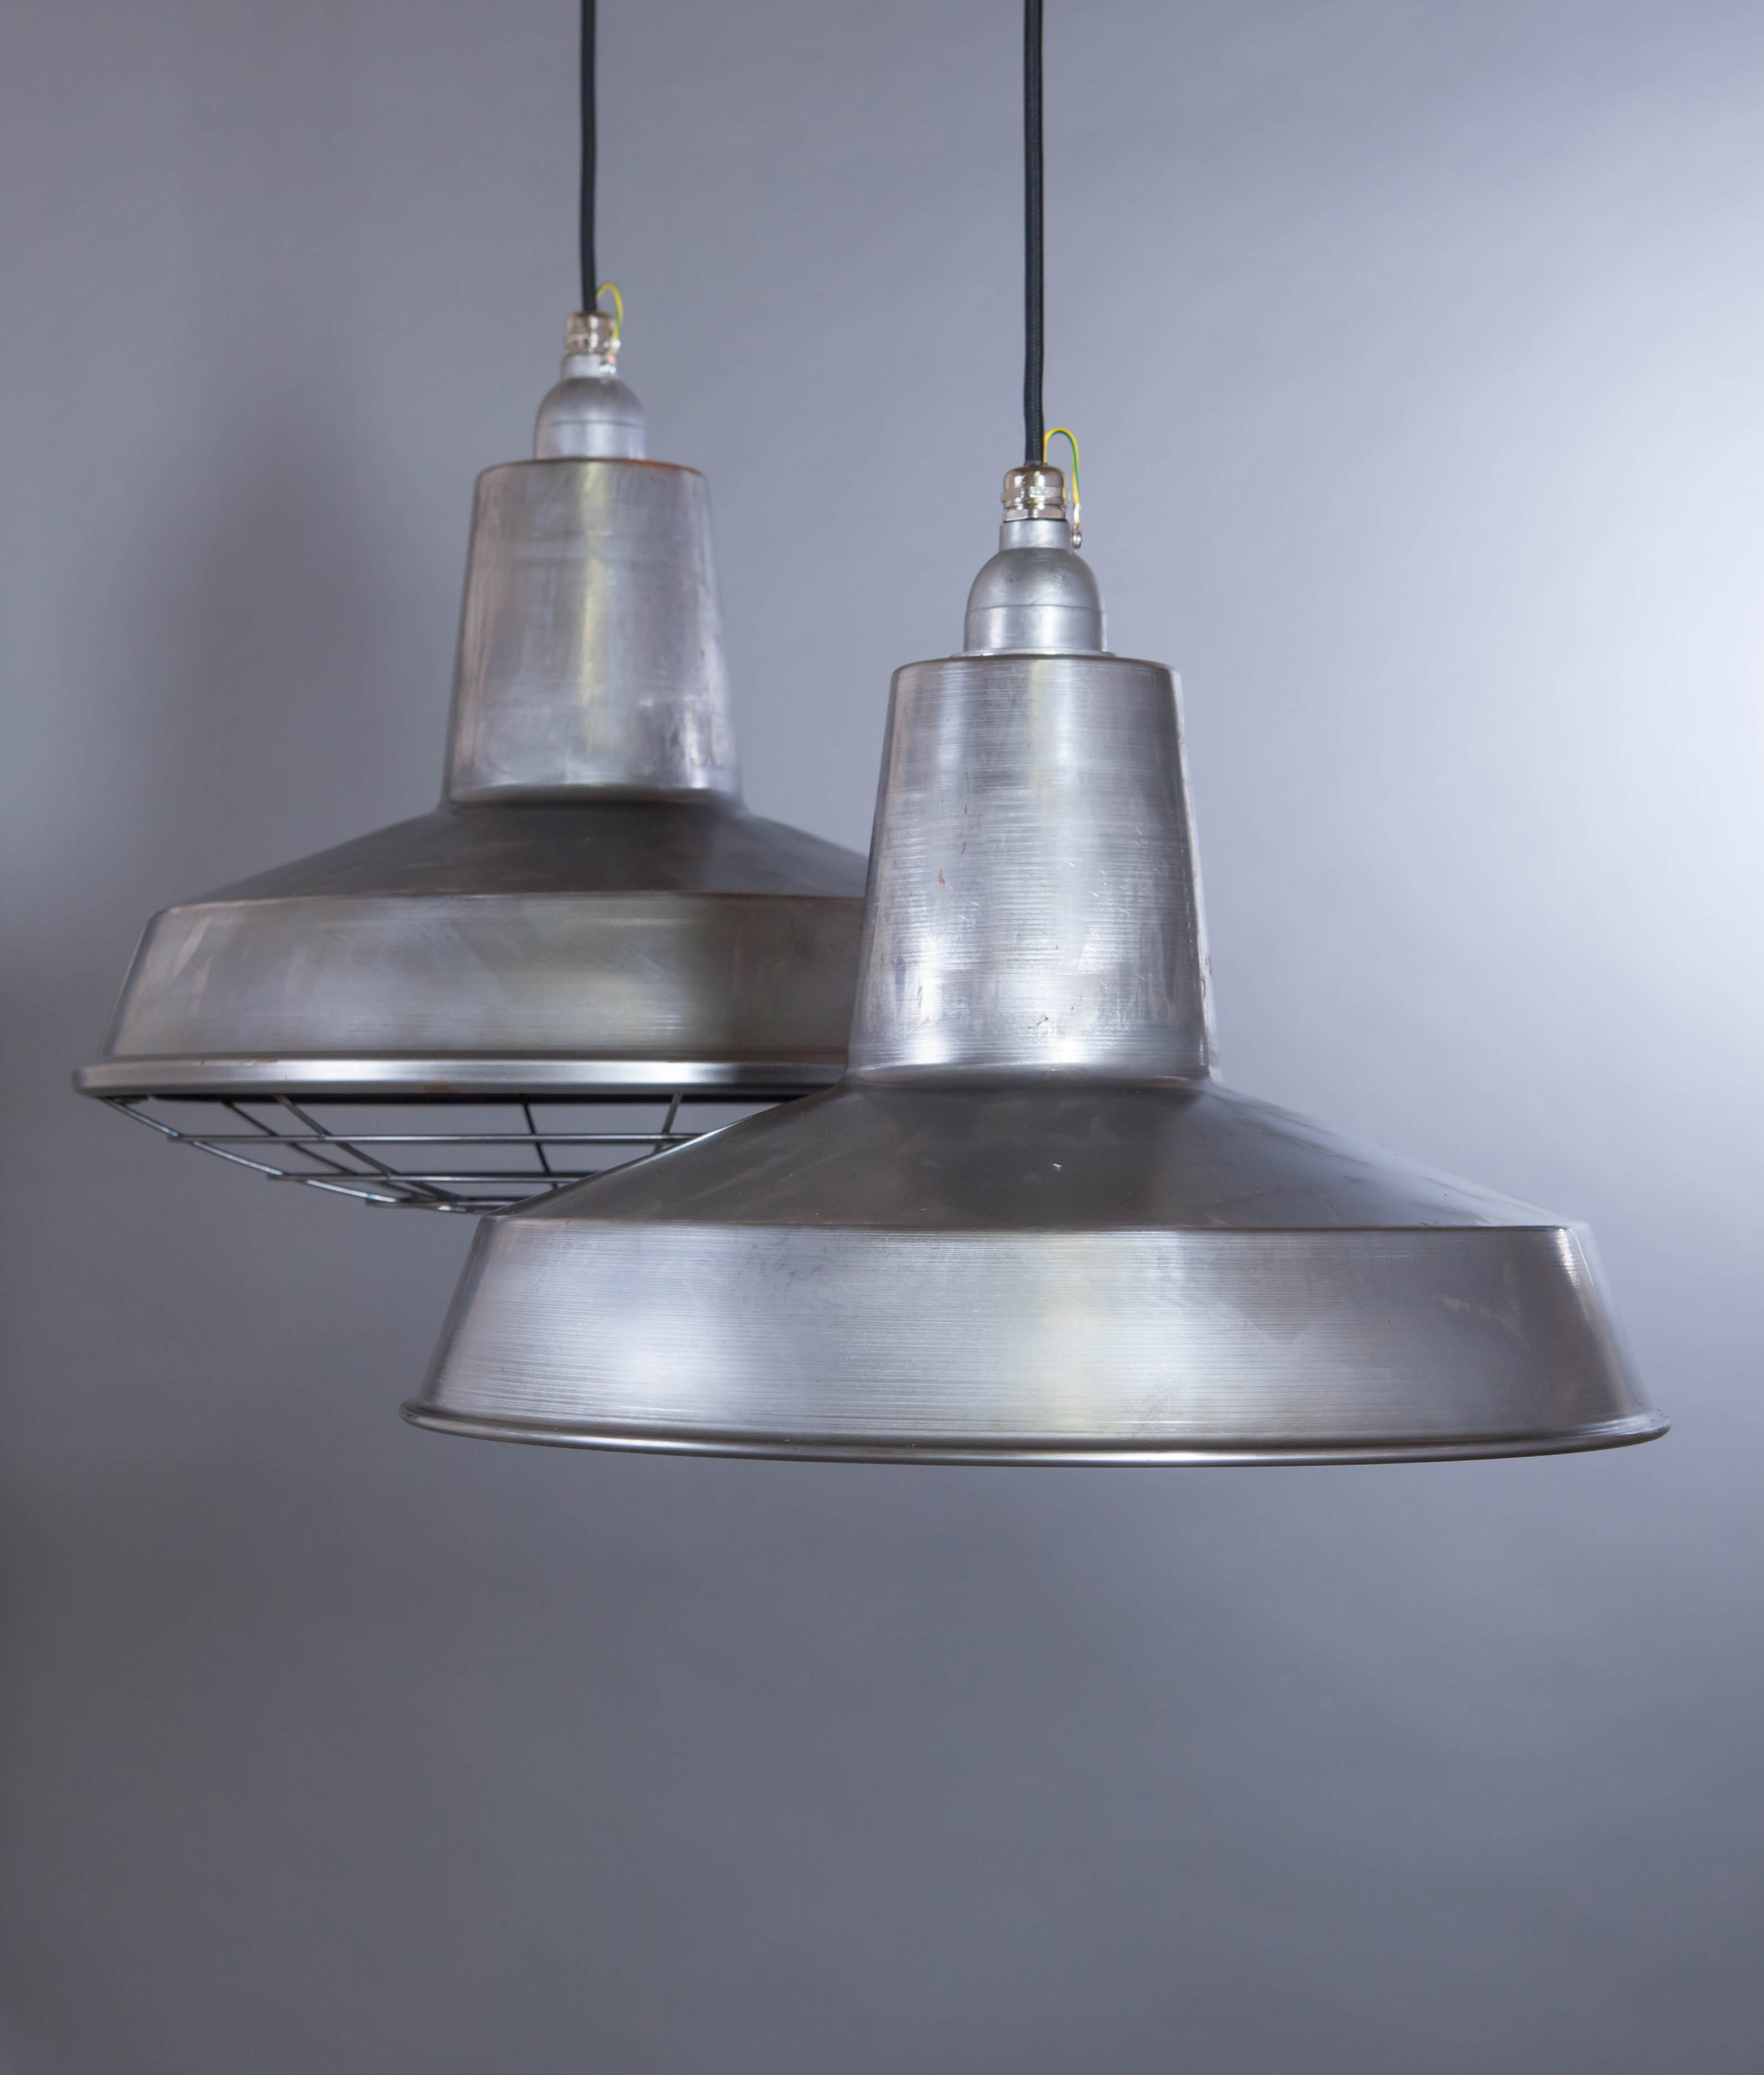 raw steel pendant light linton industrial style ceiling light. Black Bedroom Furniture Sets. Home Design Ideas